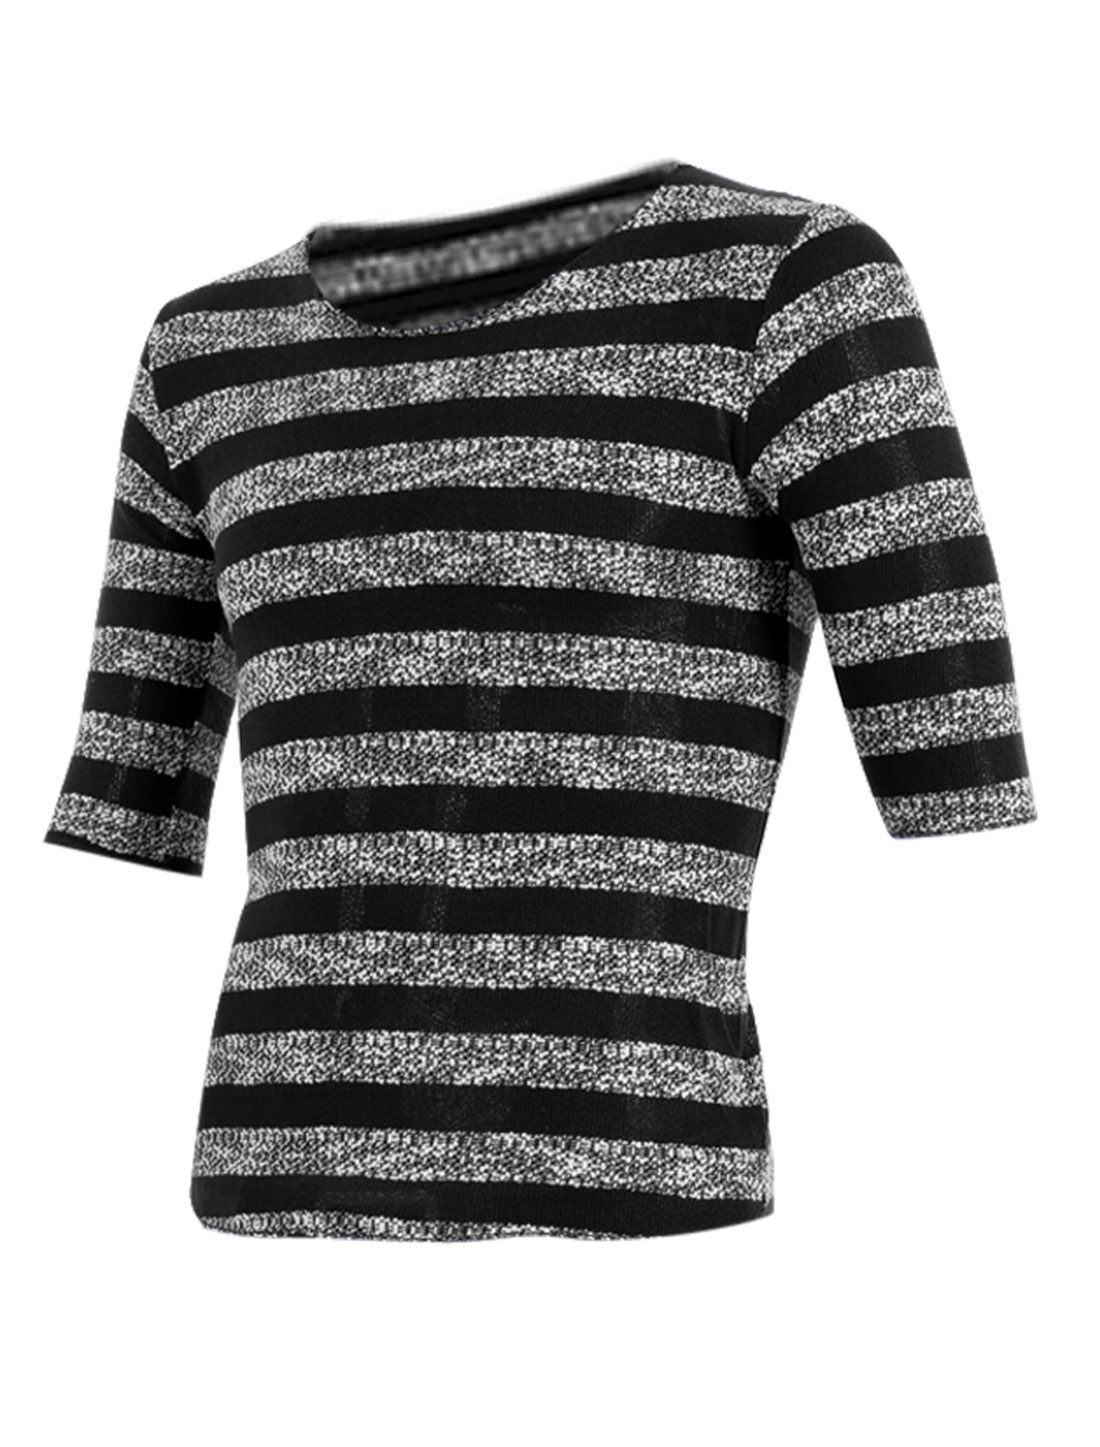 Men Personalized Round Neck Stretchy Knitting Shirt Black M